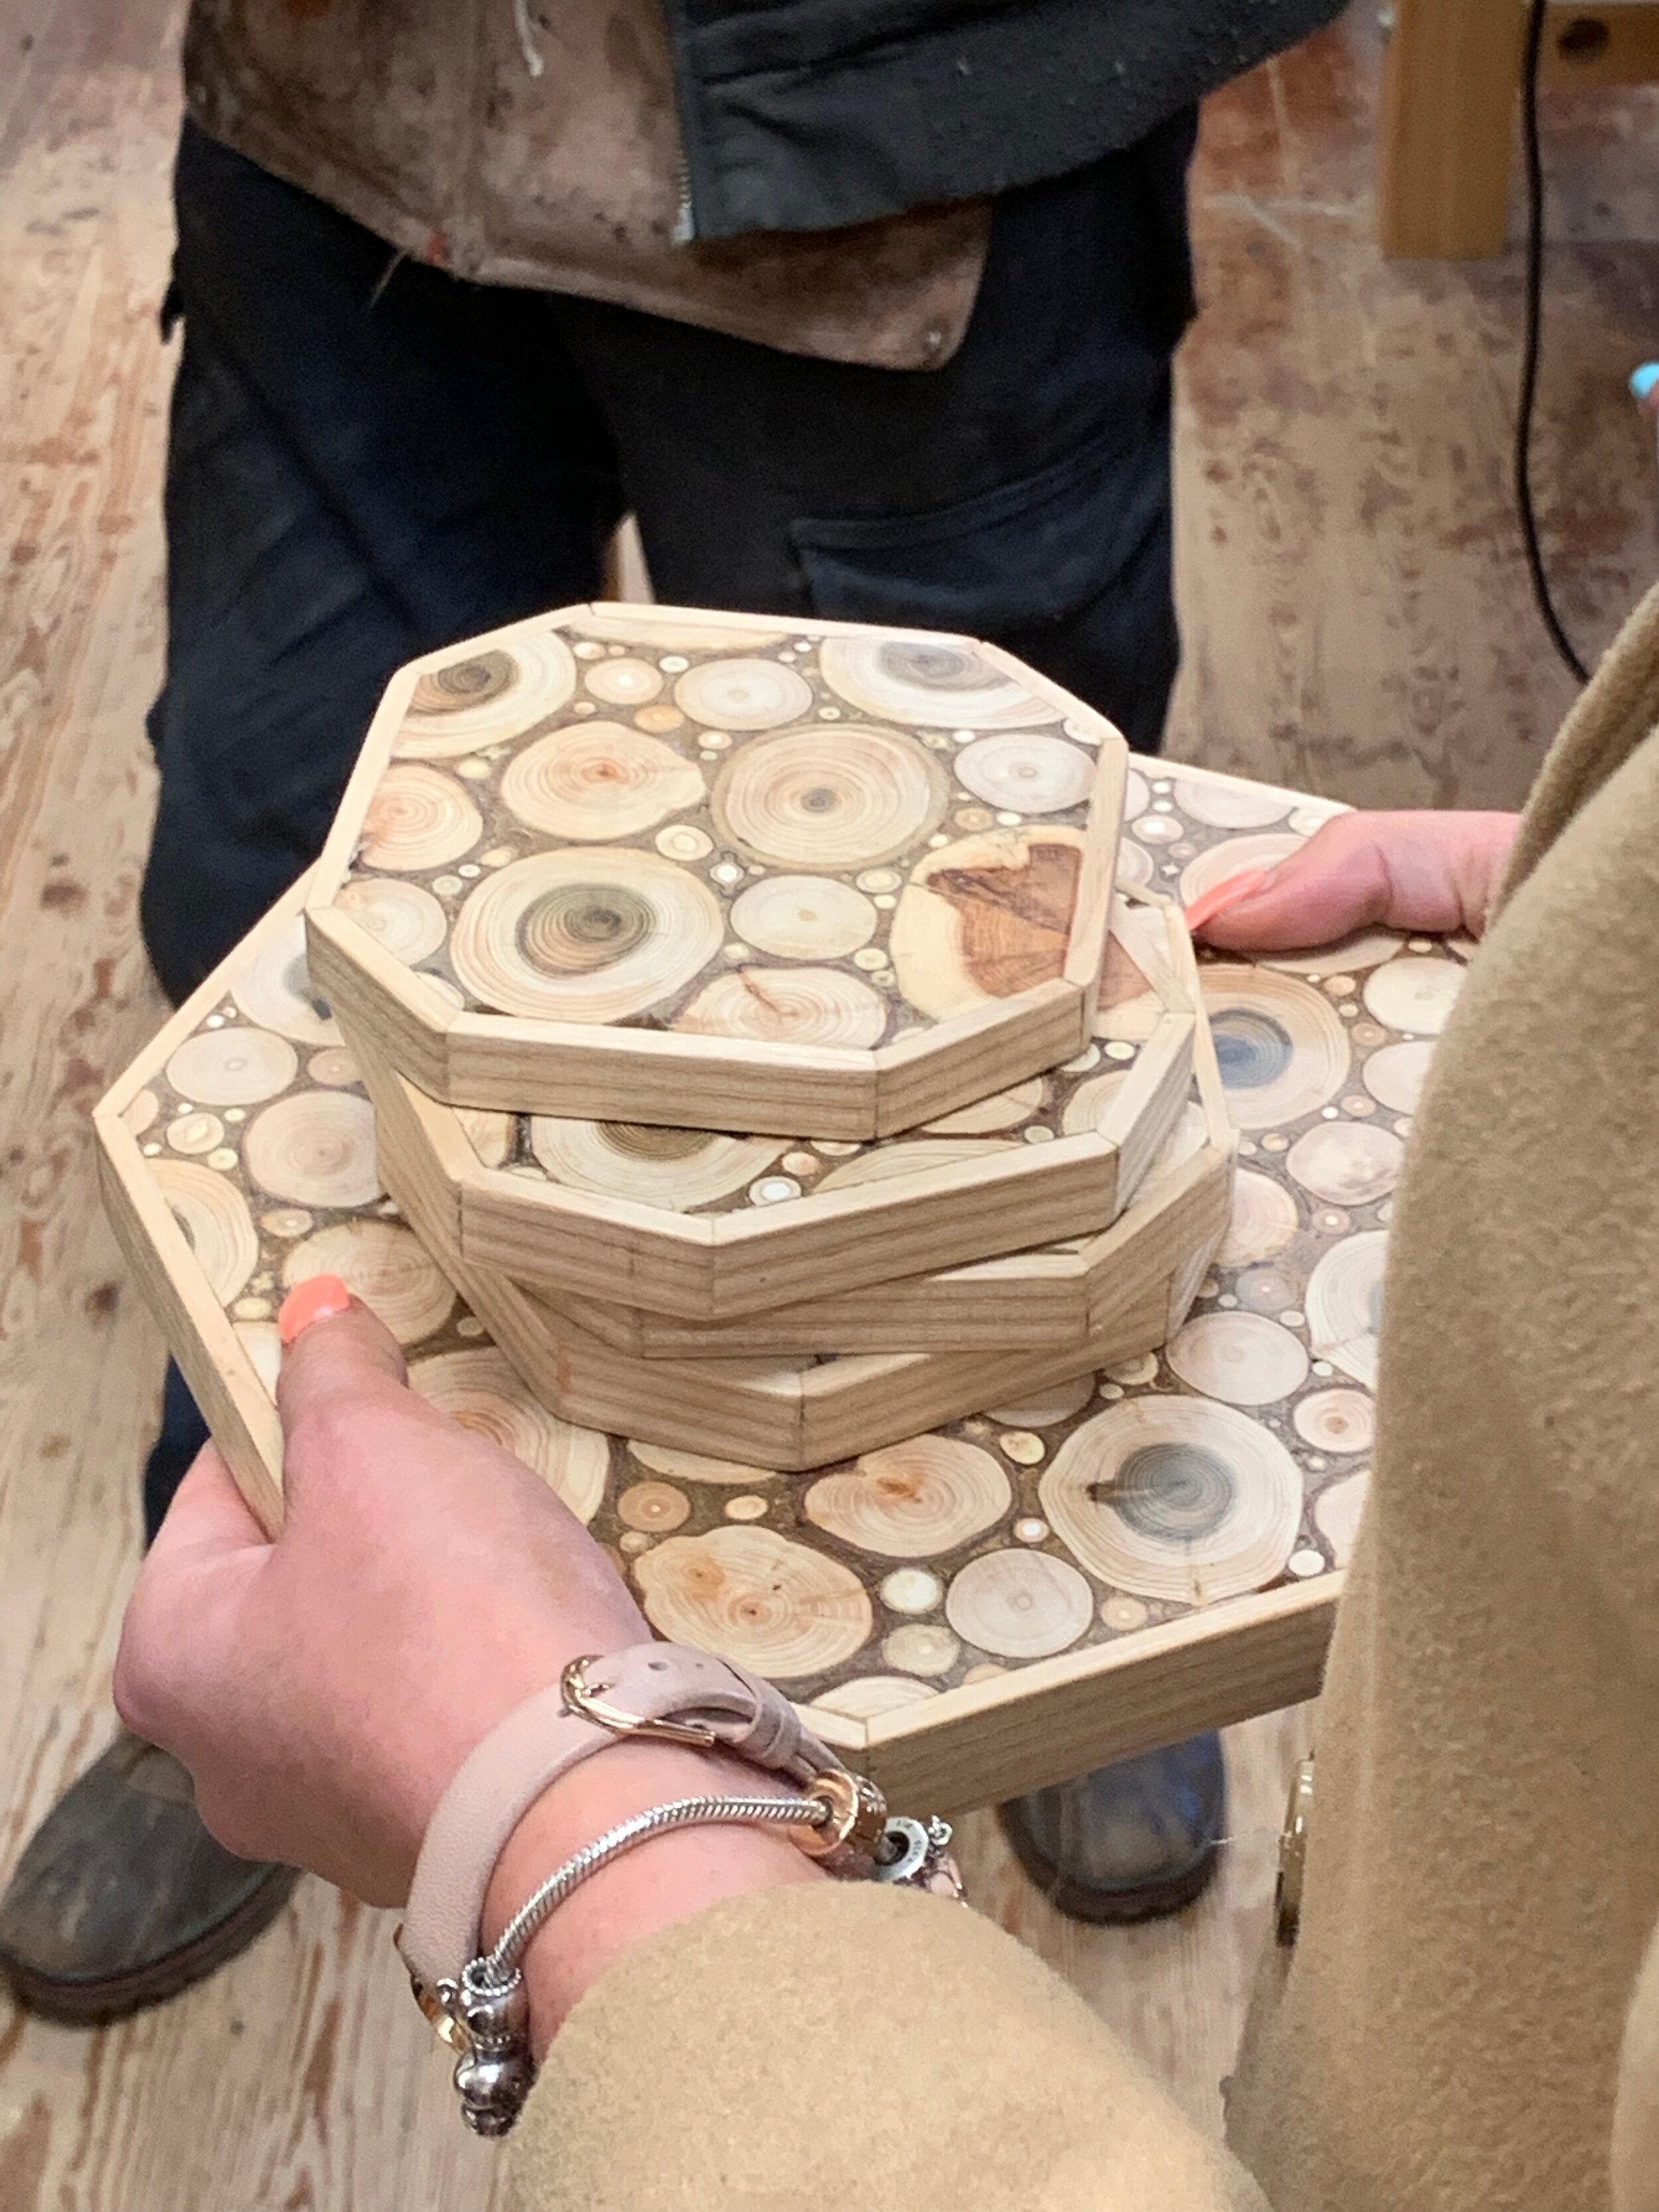 Wood crafts made in the workshop.